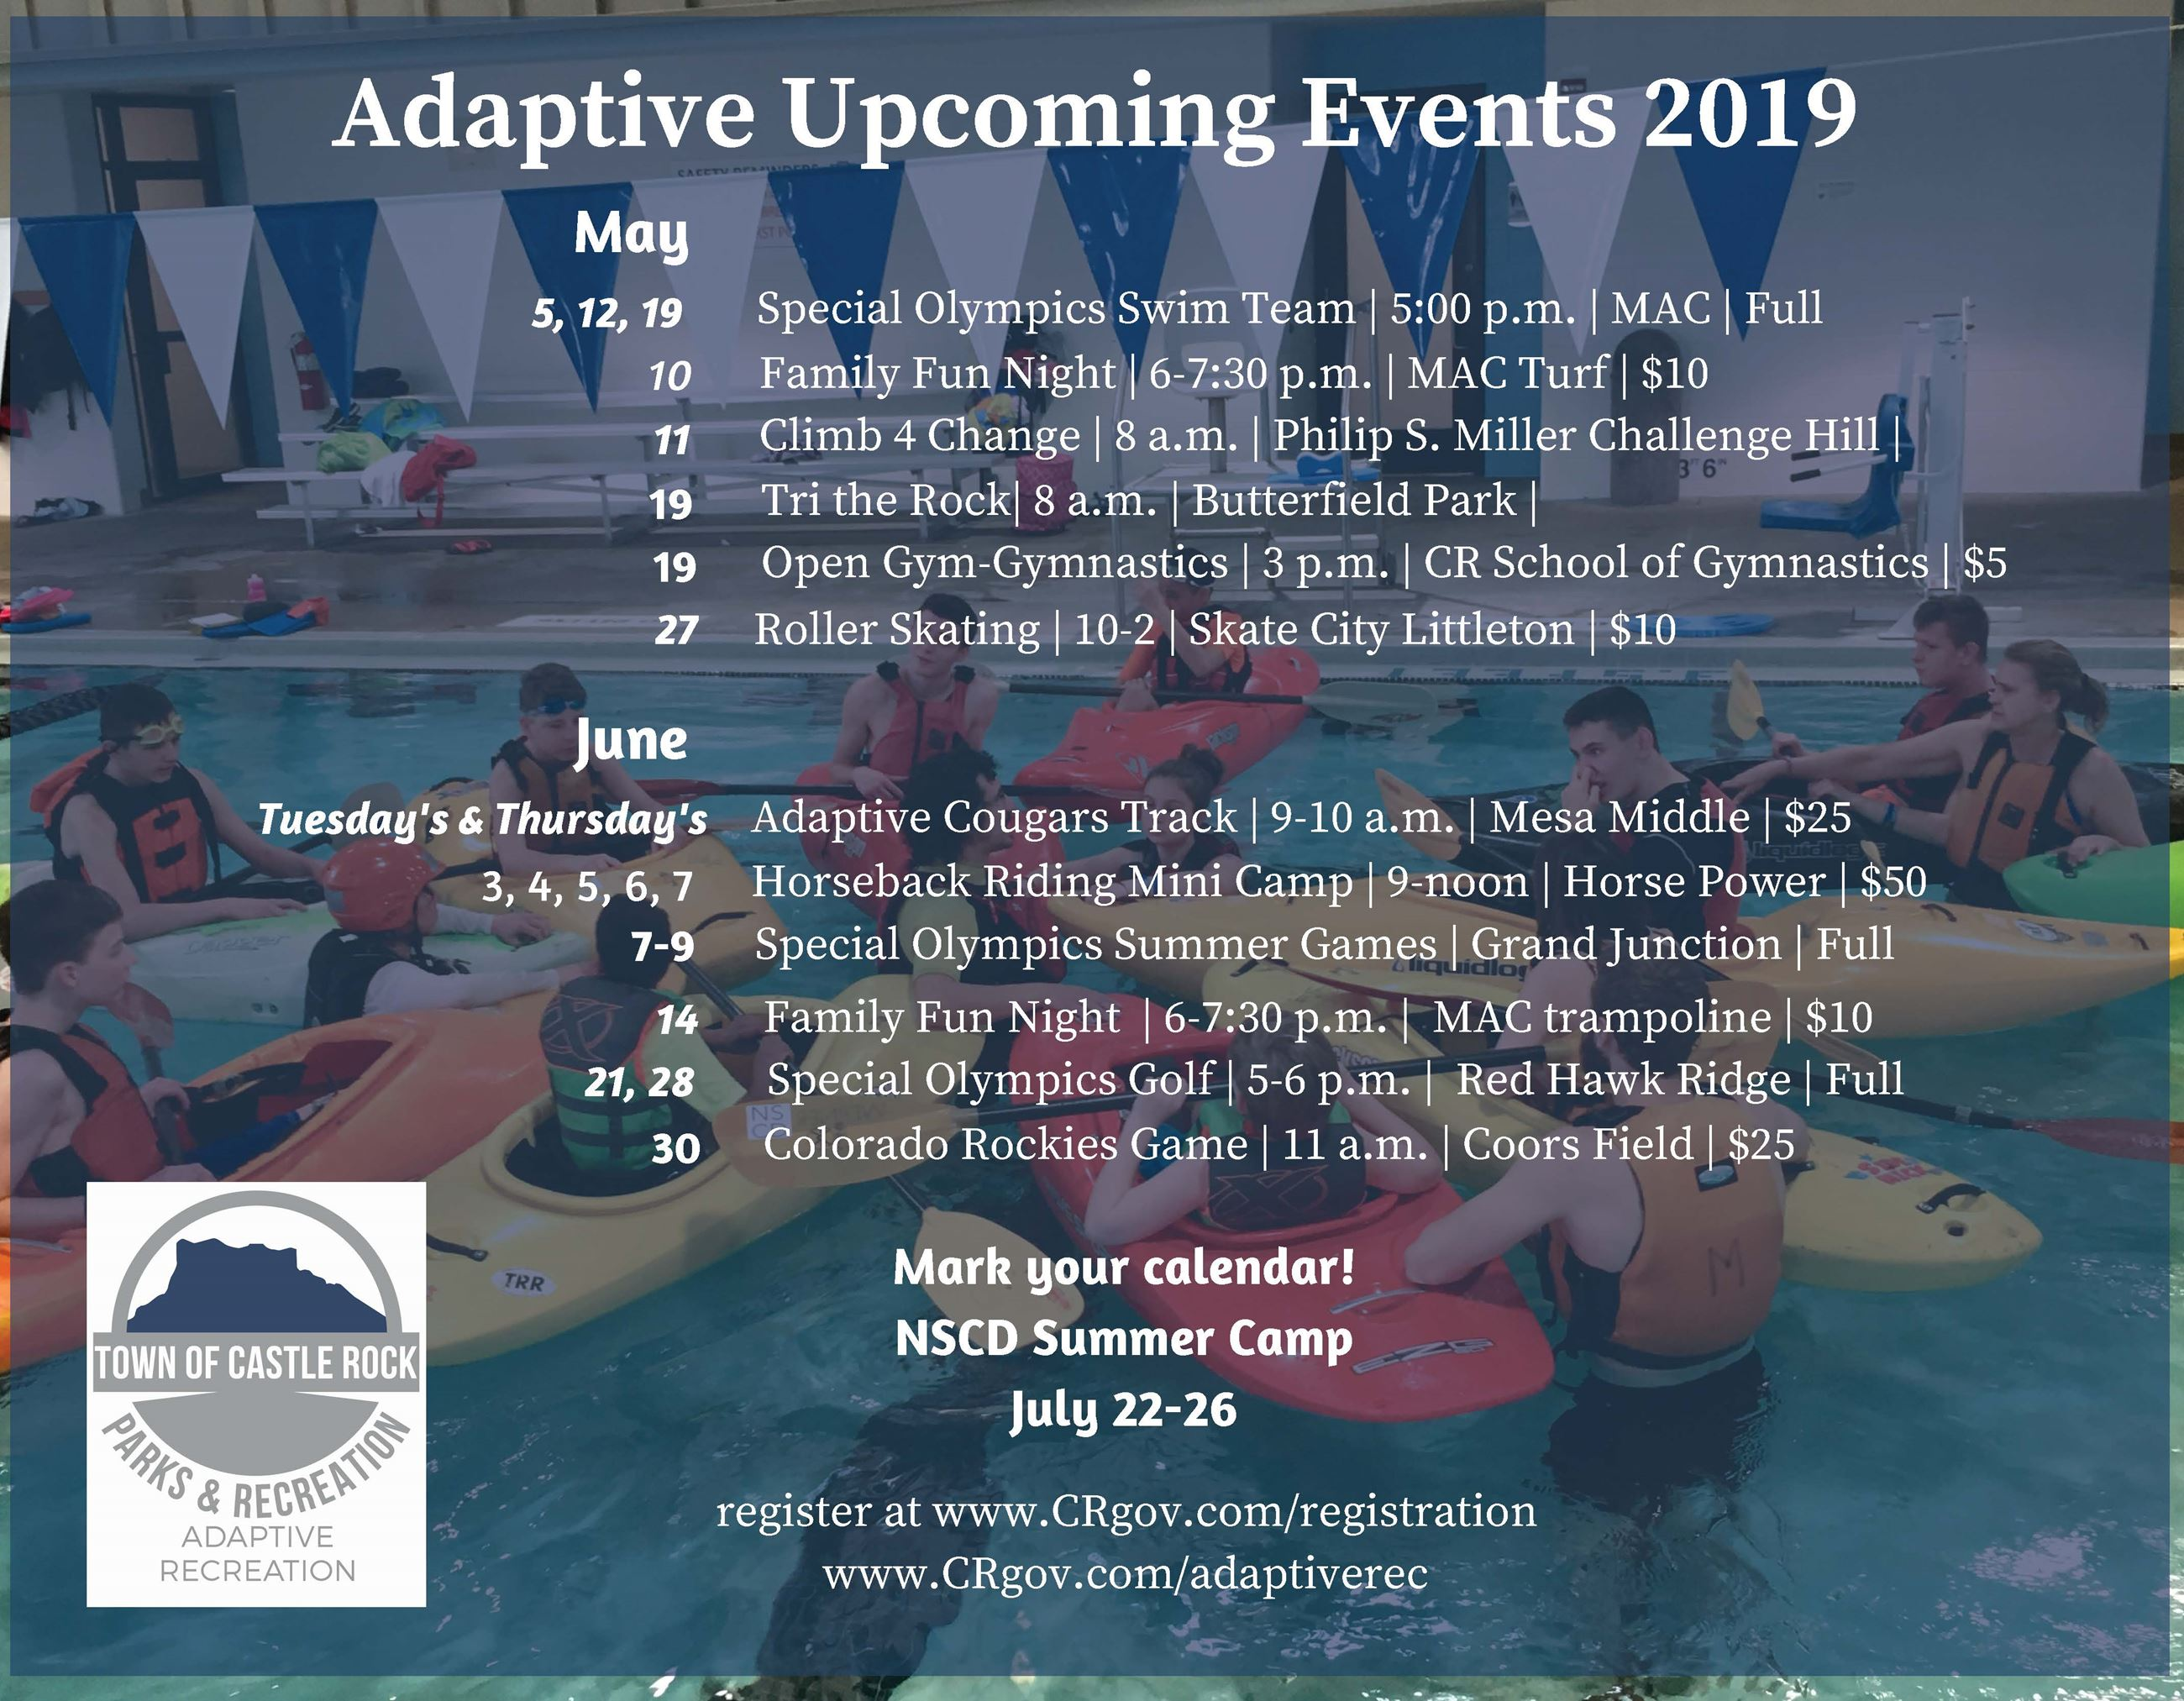 Adaptive Rec May/June schedule of upcoming events